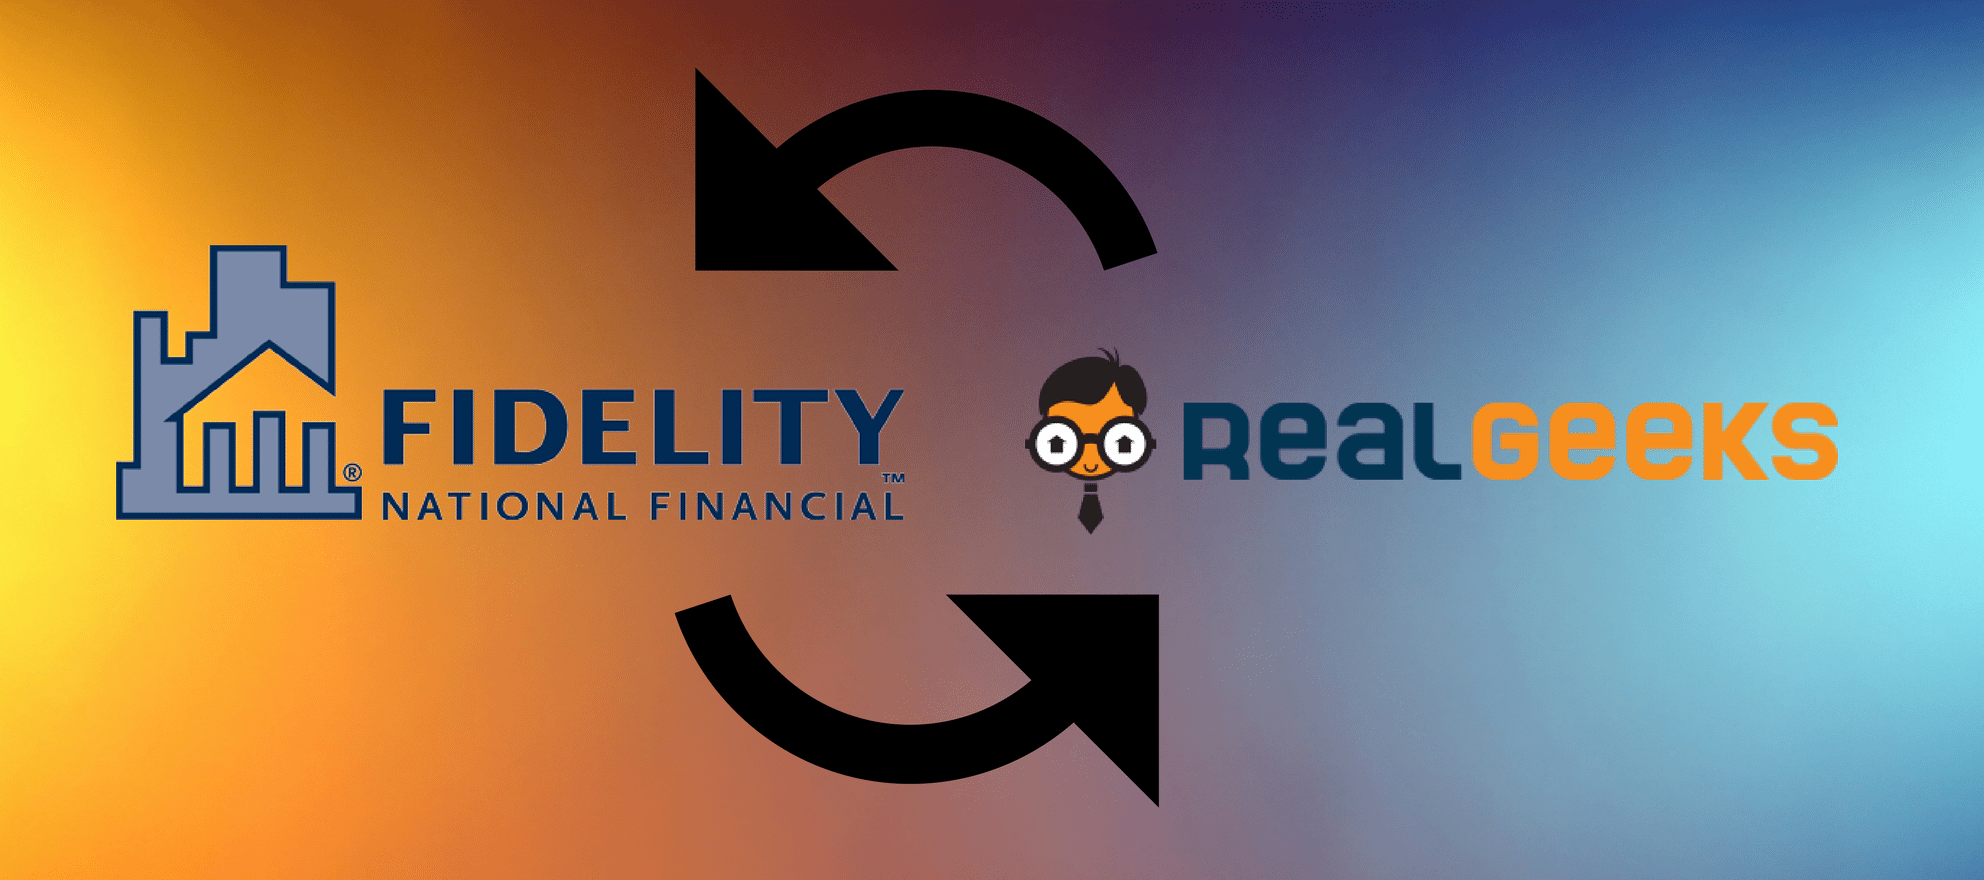 Real Geeks Acquired By Fidelity National Financial